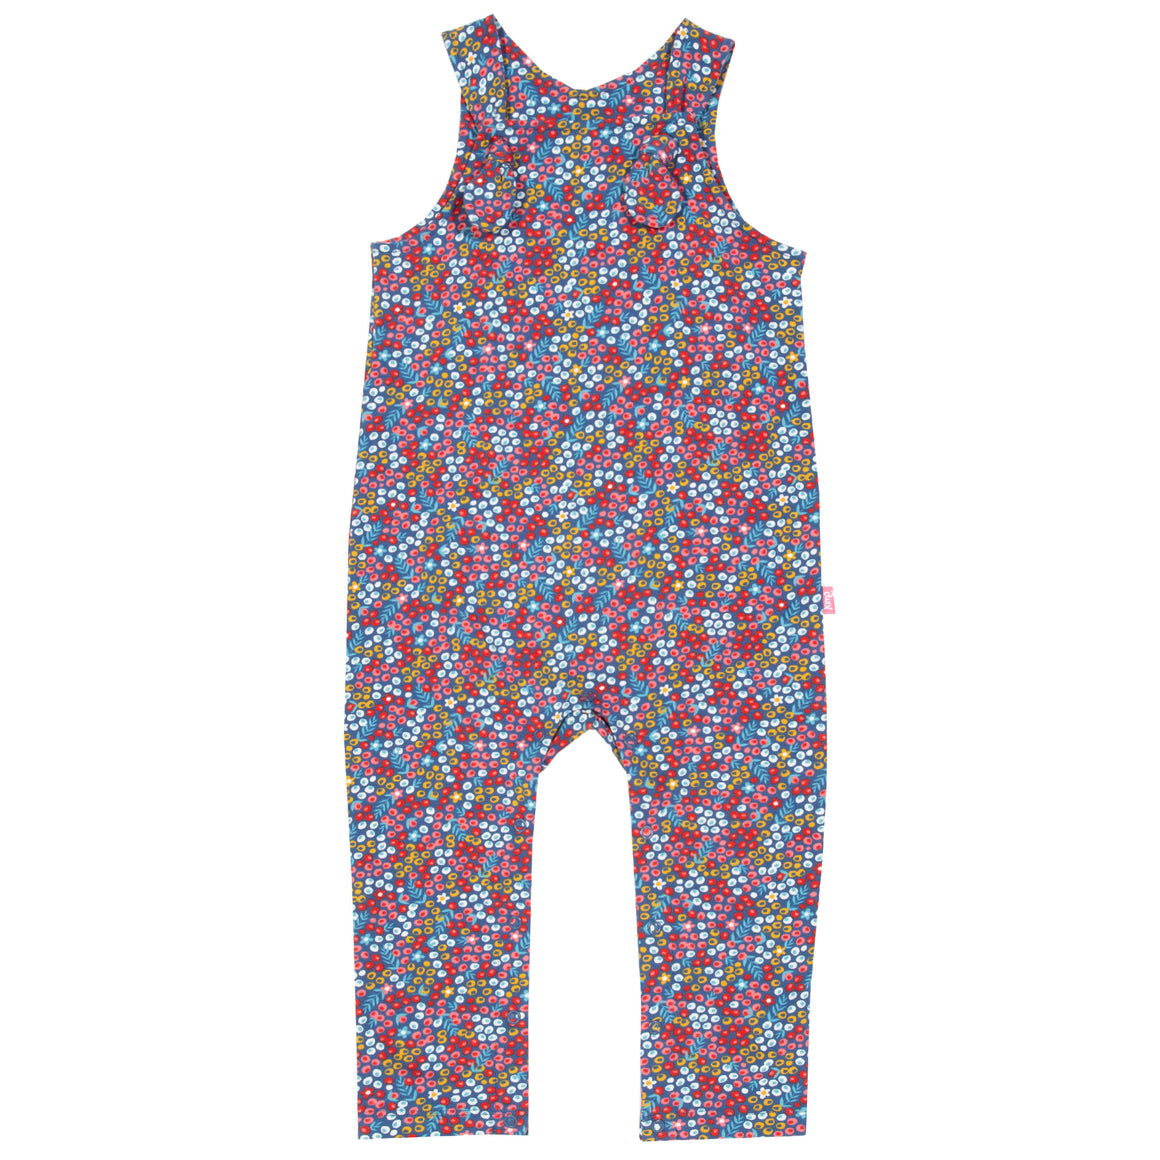 New Kite berry ditsy dungarees size 9-12 months